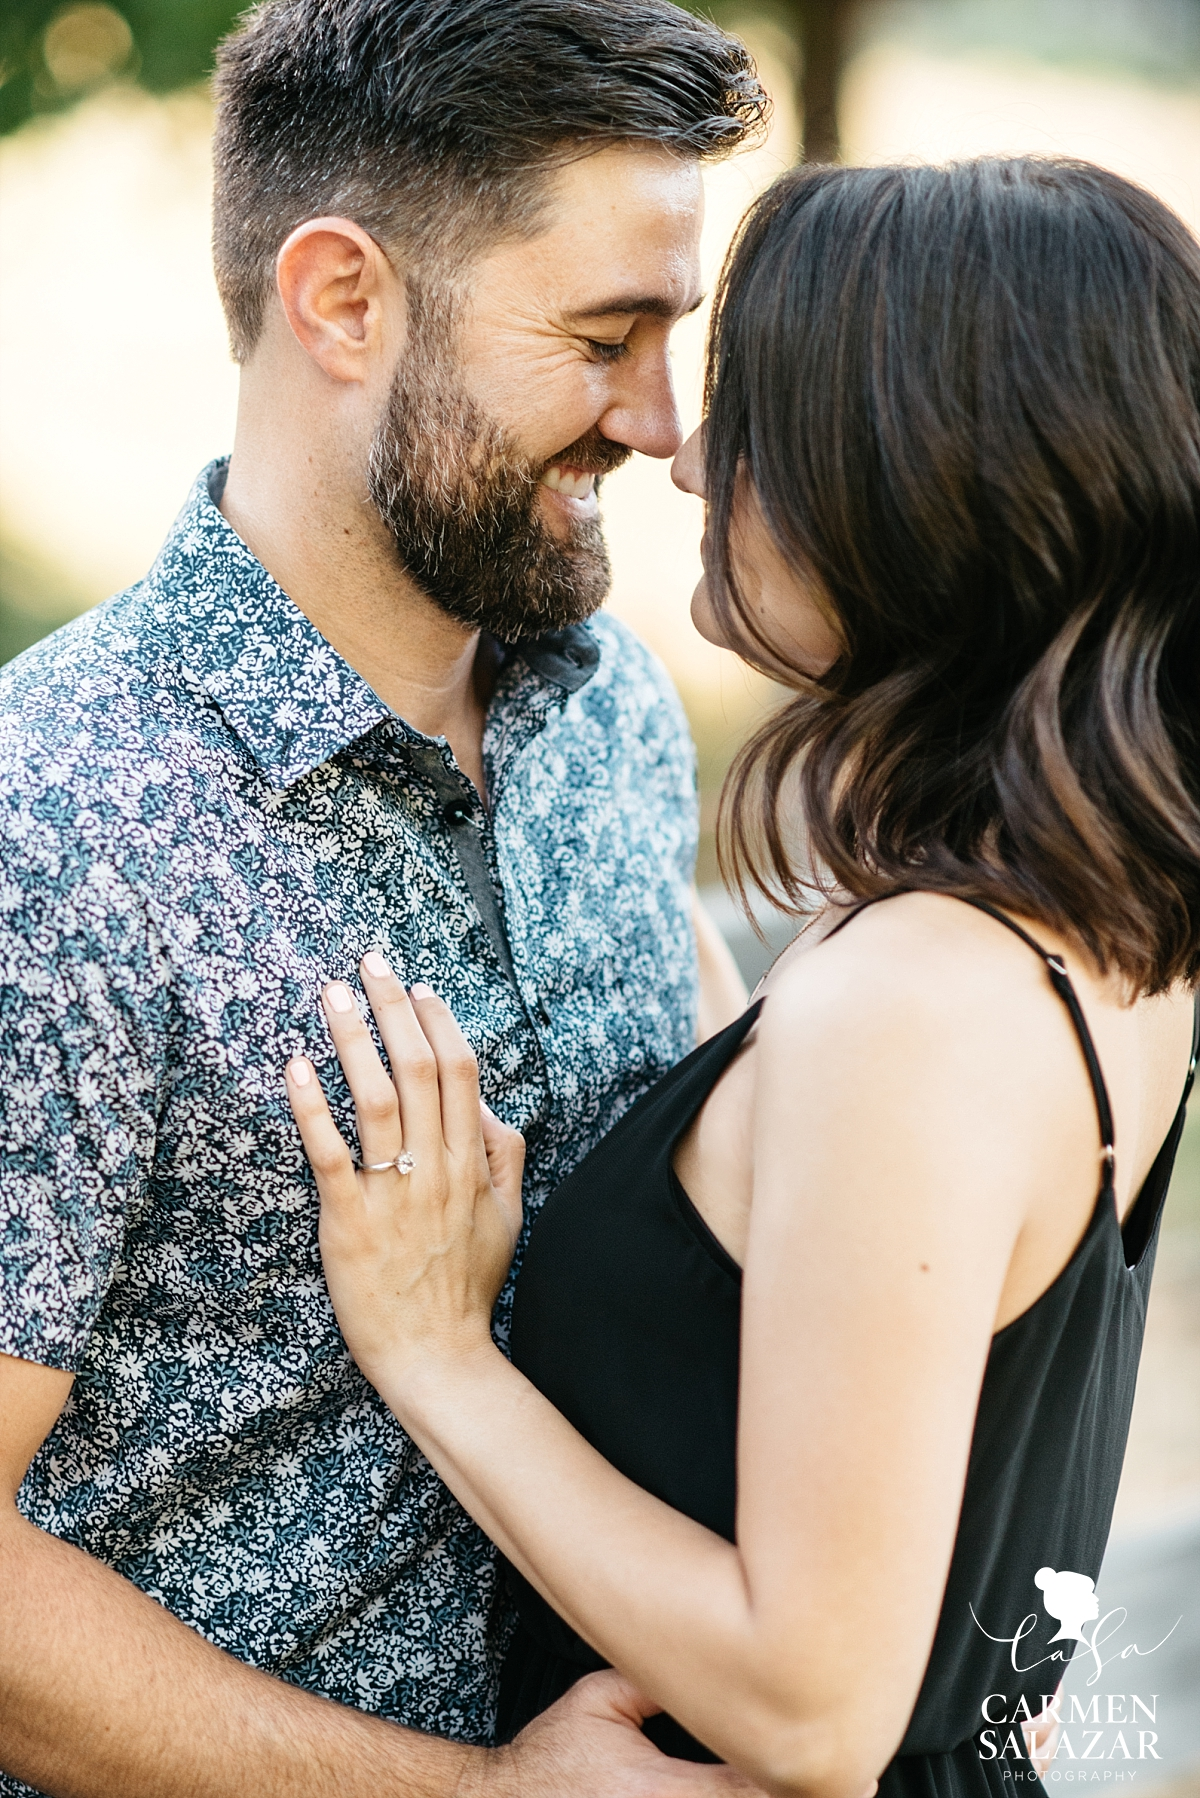 Intimate California engagement portraits - Carmen Salazar